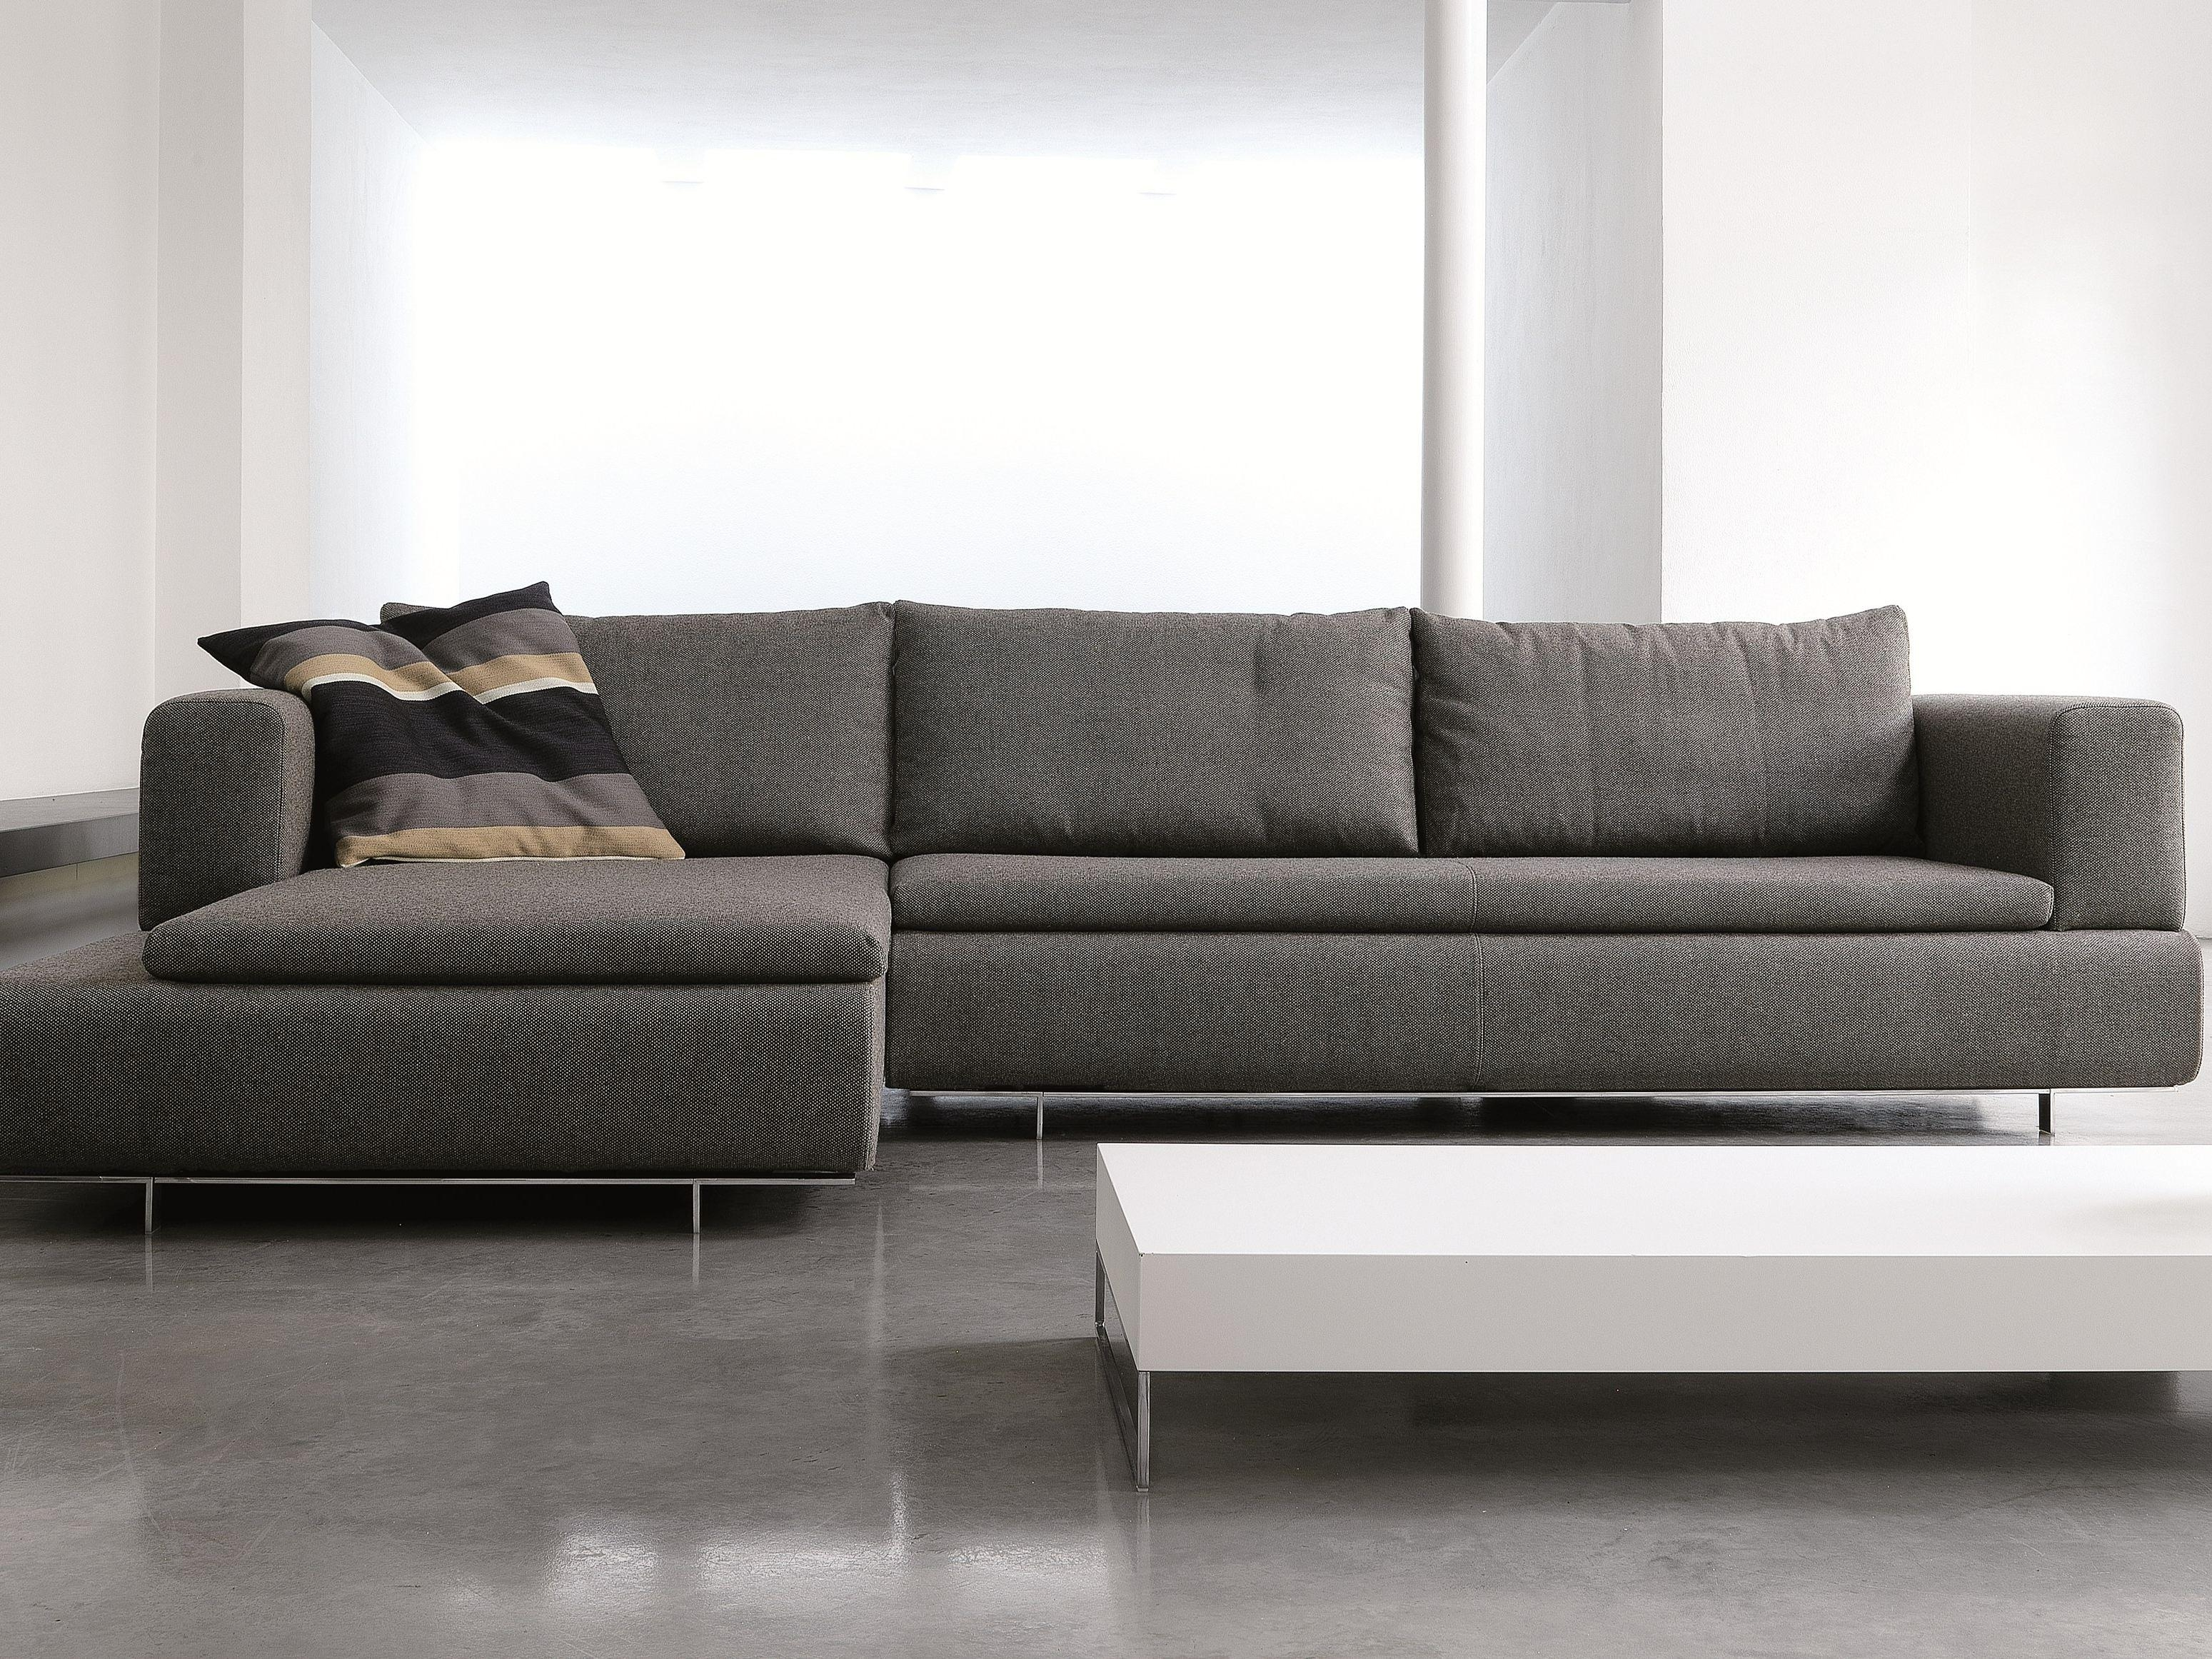 485 Forum | Sofa With Chaise Longuevibieffe Design Gianluigi Pertaining To Sofas With Chaise Longue (View 4 of 20)